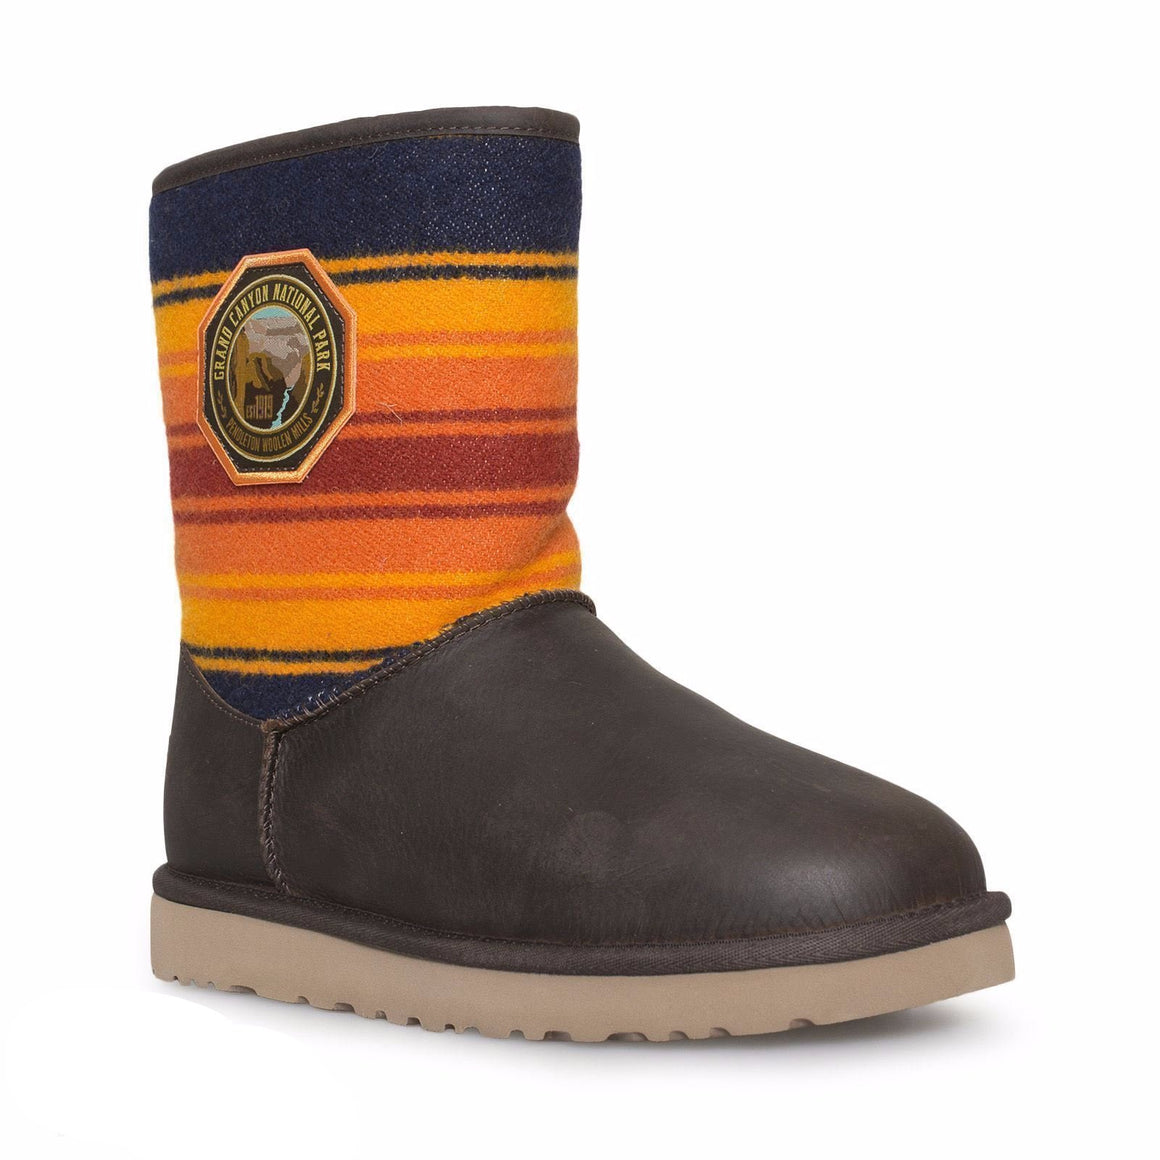 UGG Classic Short Pendleton NP Grand Canyon Boots